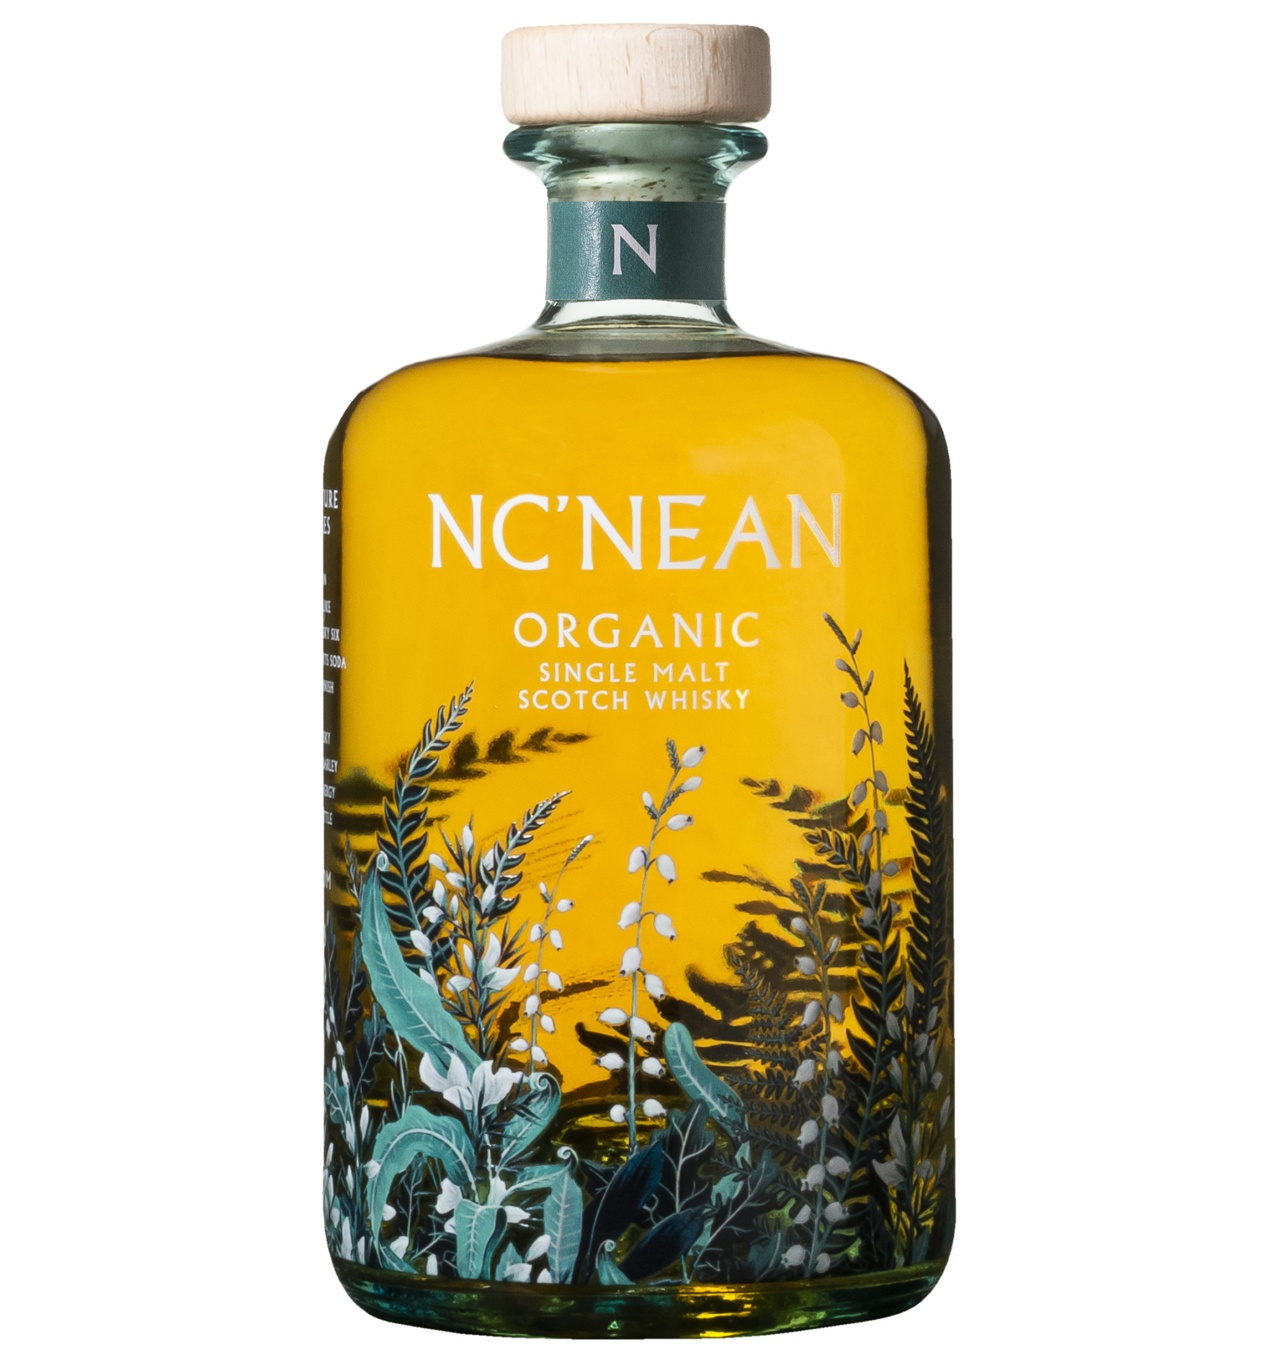 Nc'nean Organic [46.0 %, 2020, Batch 1, STR Red Wine + Ex-Bourbon]